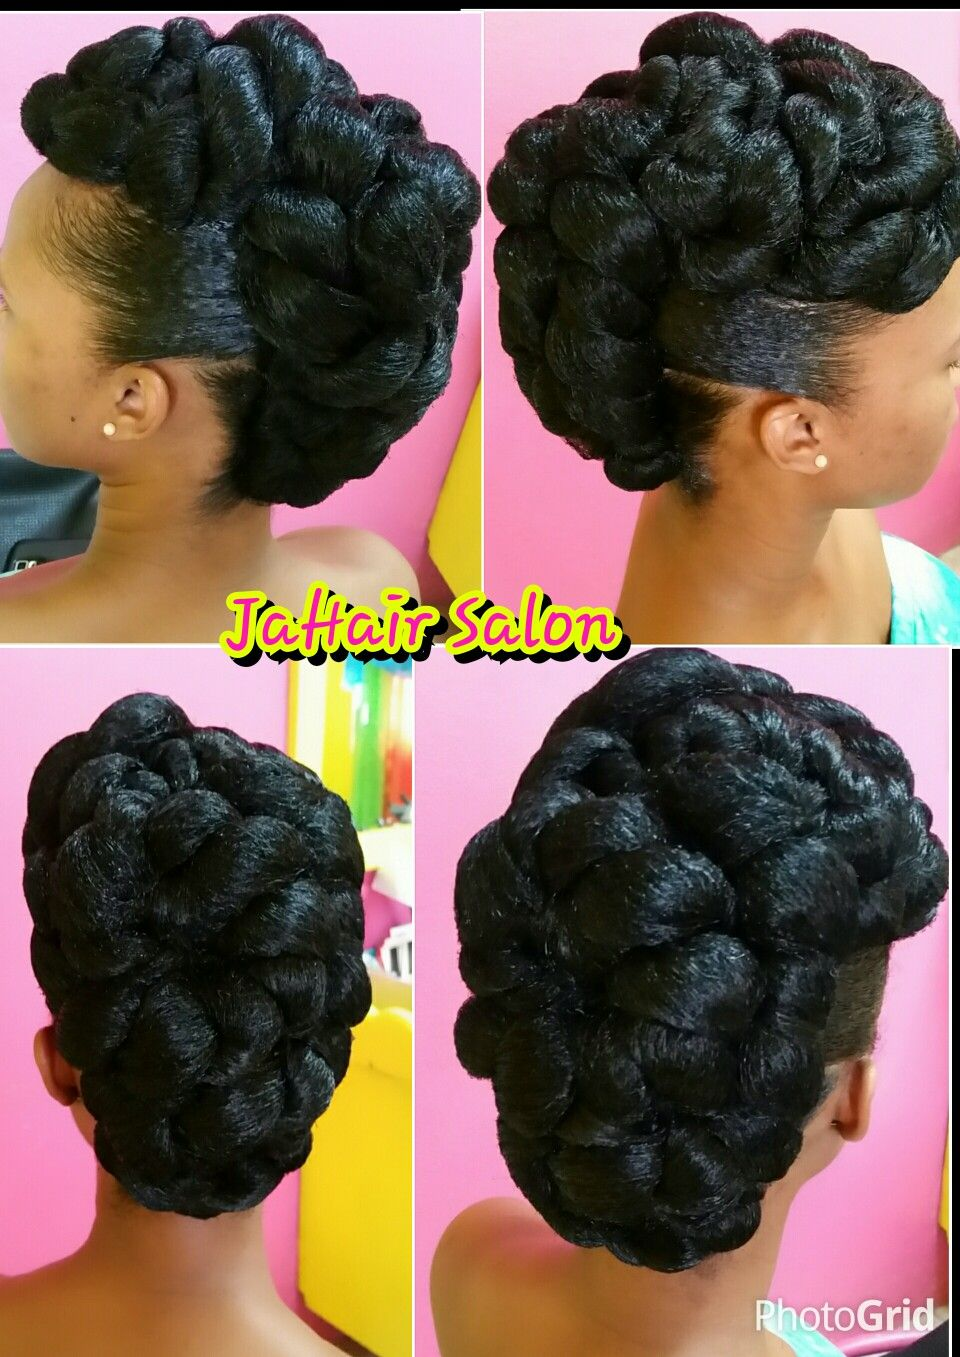 50 cute updos for natural hair black braided updo black braids updo natural hair updonatural braided hairstylesbraided pmusecretfo Images